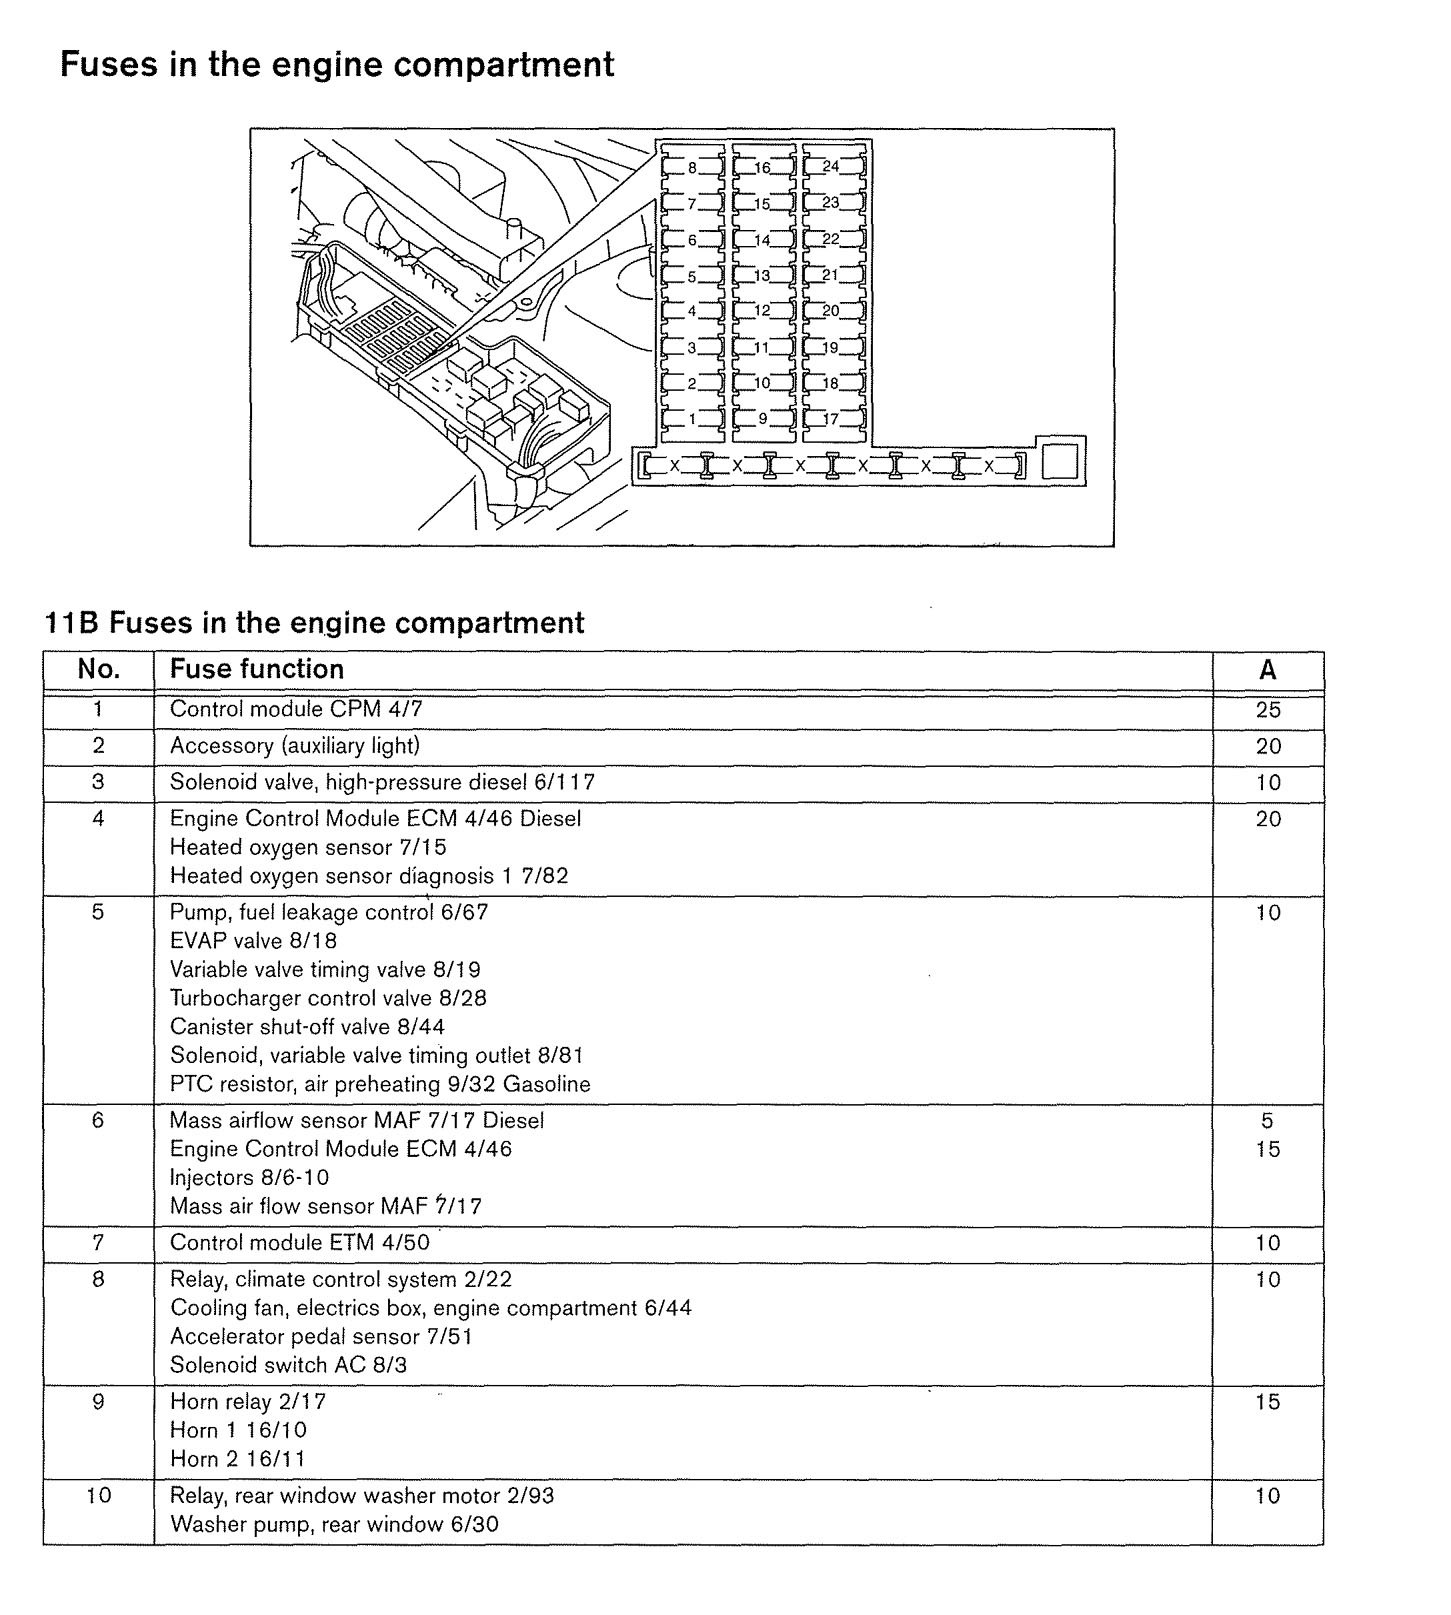 2002 Volvo Xc70 Fuse Diagram - Wiring Diagram Dash on volvo 240 window relay installation, volvo gl wagon, lexus fuse diagram, mini fuse diagram, dodge fuse diagram, toyota fuse diagram, scion fuse diagram, volvo fuses and relays, isuzu fuse diagram, ac fuse diagram, freightliner fuse diagram, mgb fuse diagram, volvo truck fuse box location, buick fuse diagram, volvo s80 fuse box location, jaguar fuse diagram, bass tracker fuse diagram, ford fuse diagram, miata fuse diagram, bmw fuse diagram,